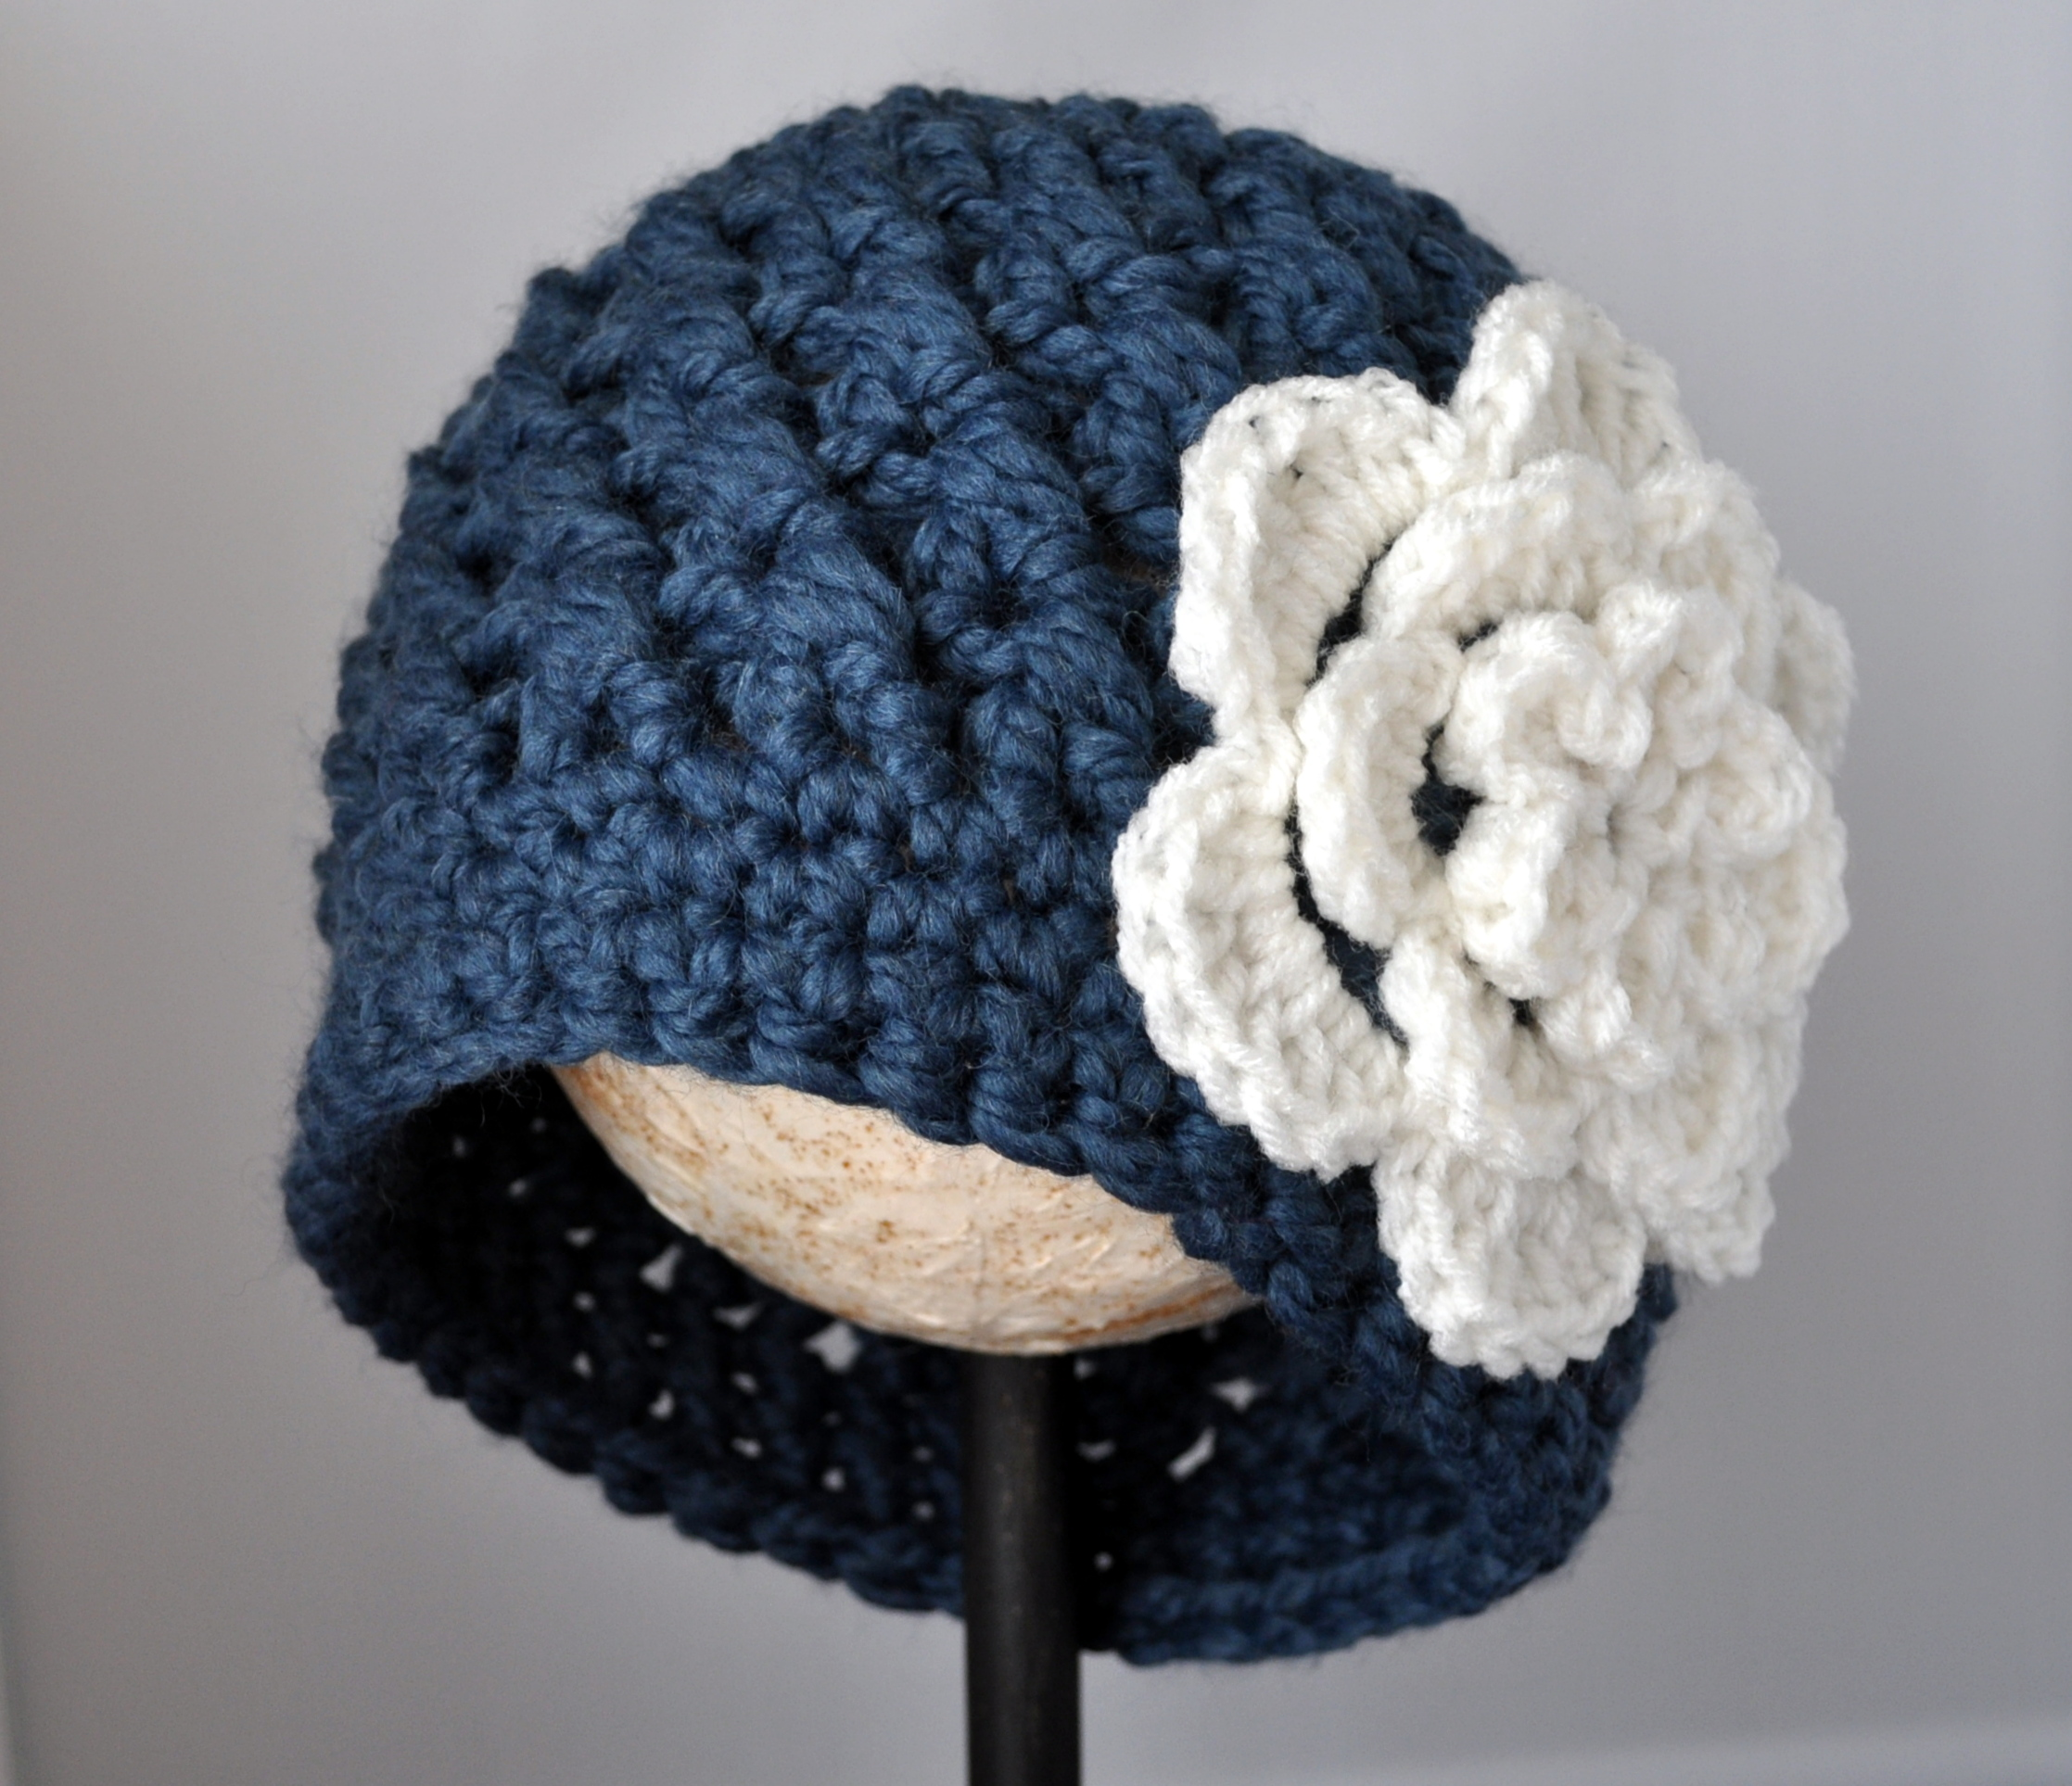 Easy Chunky Crochet Hat Pattern : Crochet Chunky Flowered Cloche Pattern Classy Crochet